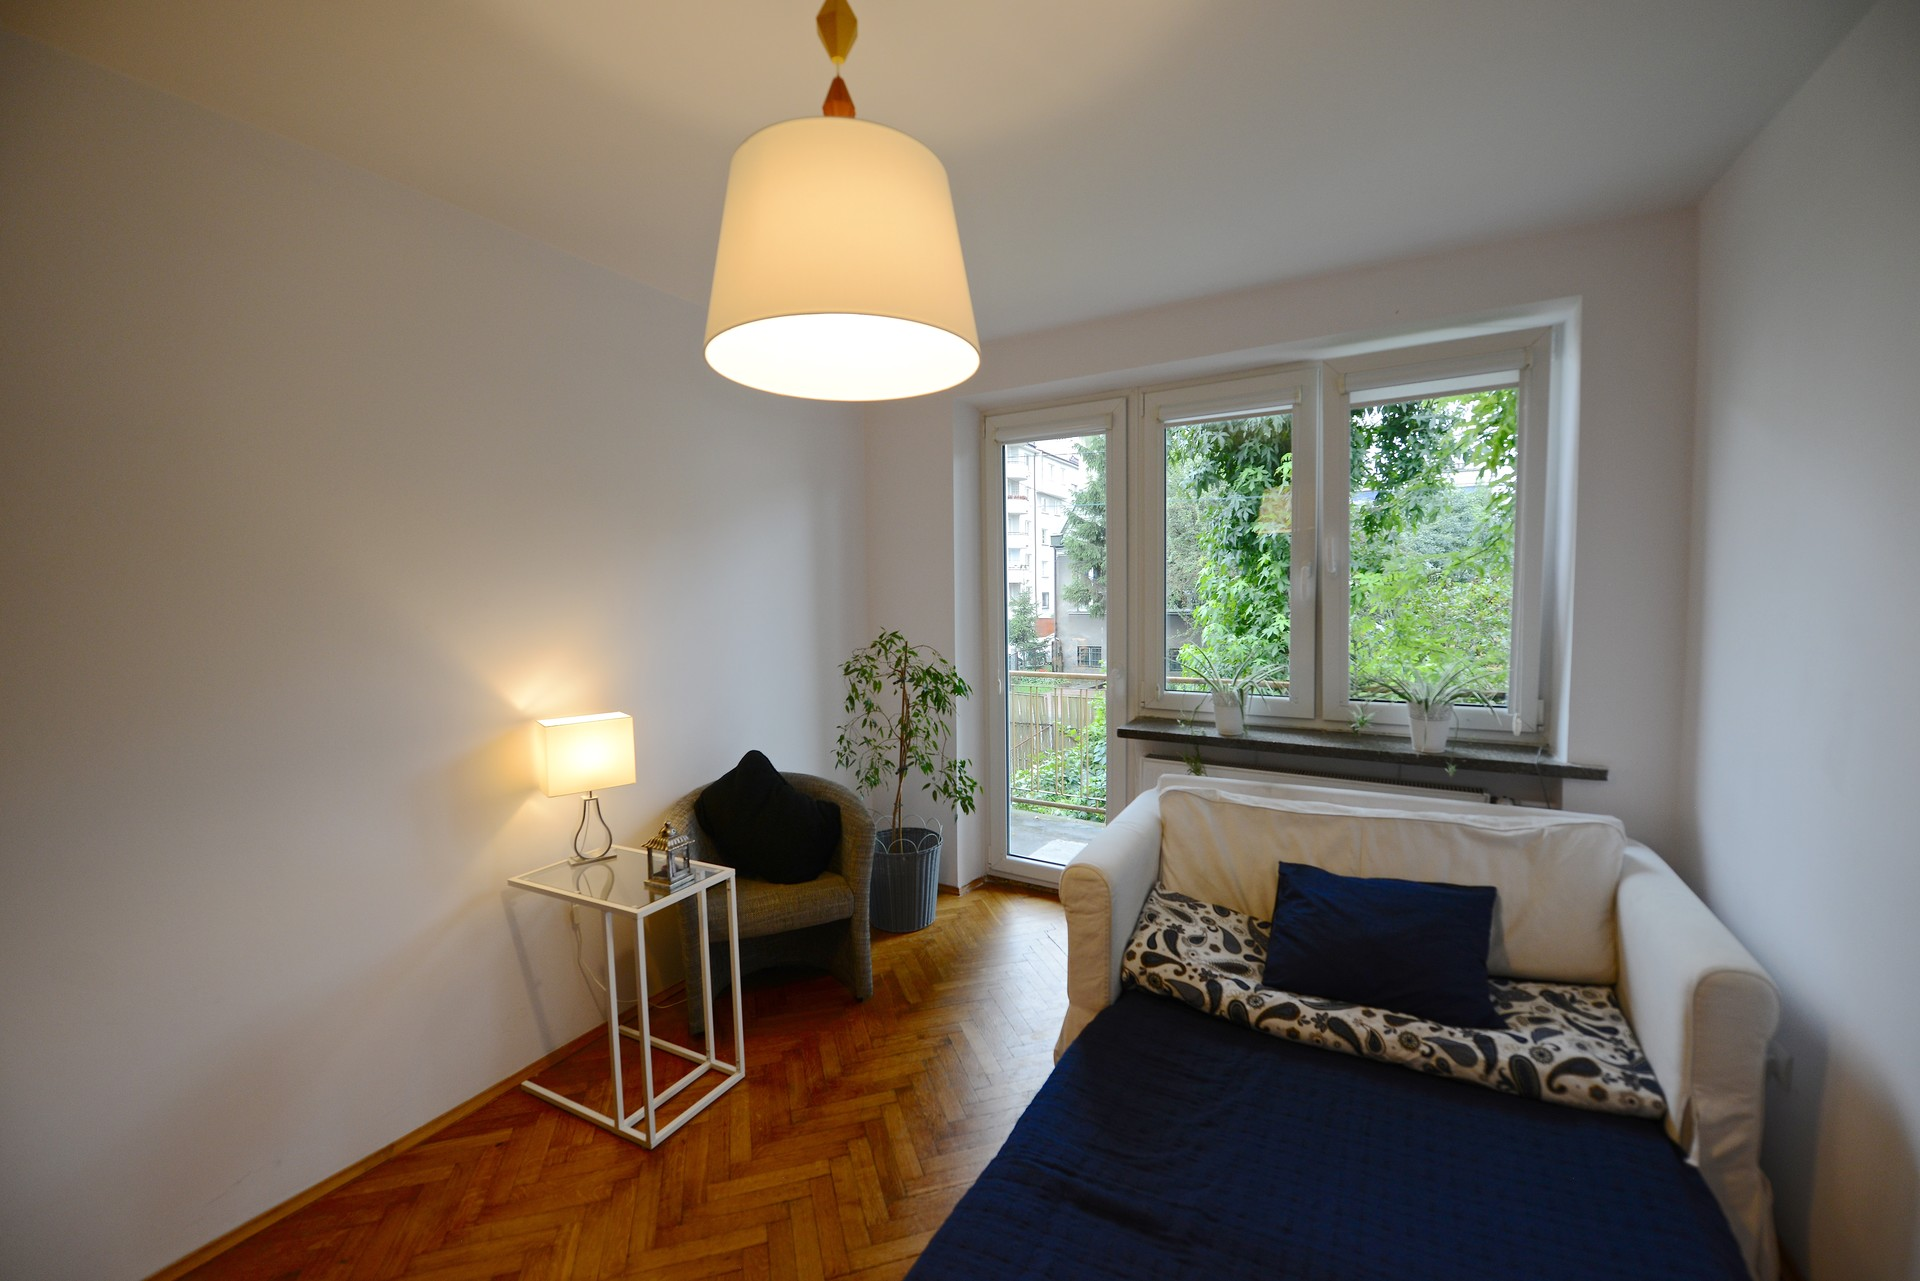 Live like a local near the city center of Cracow!